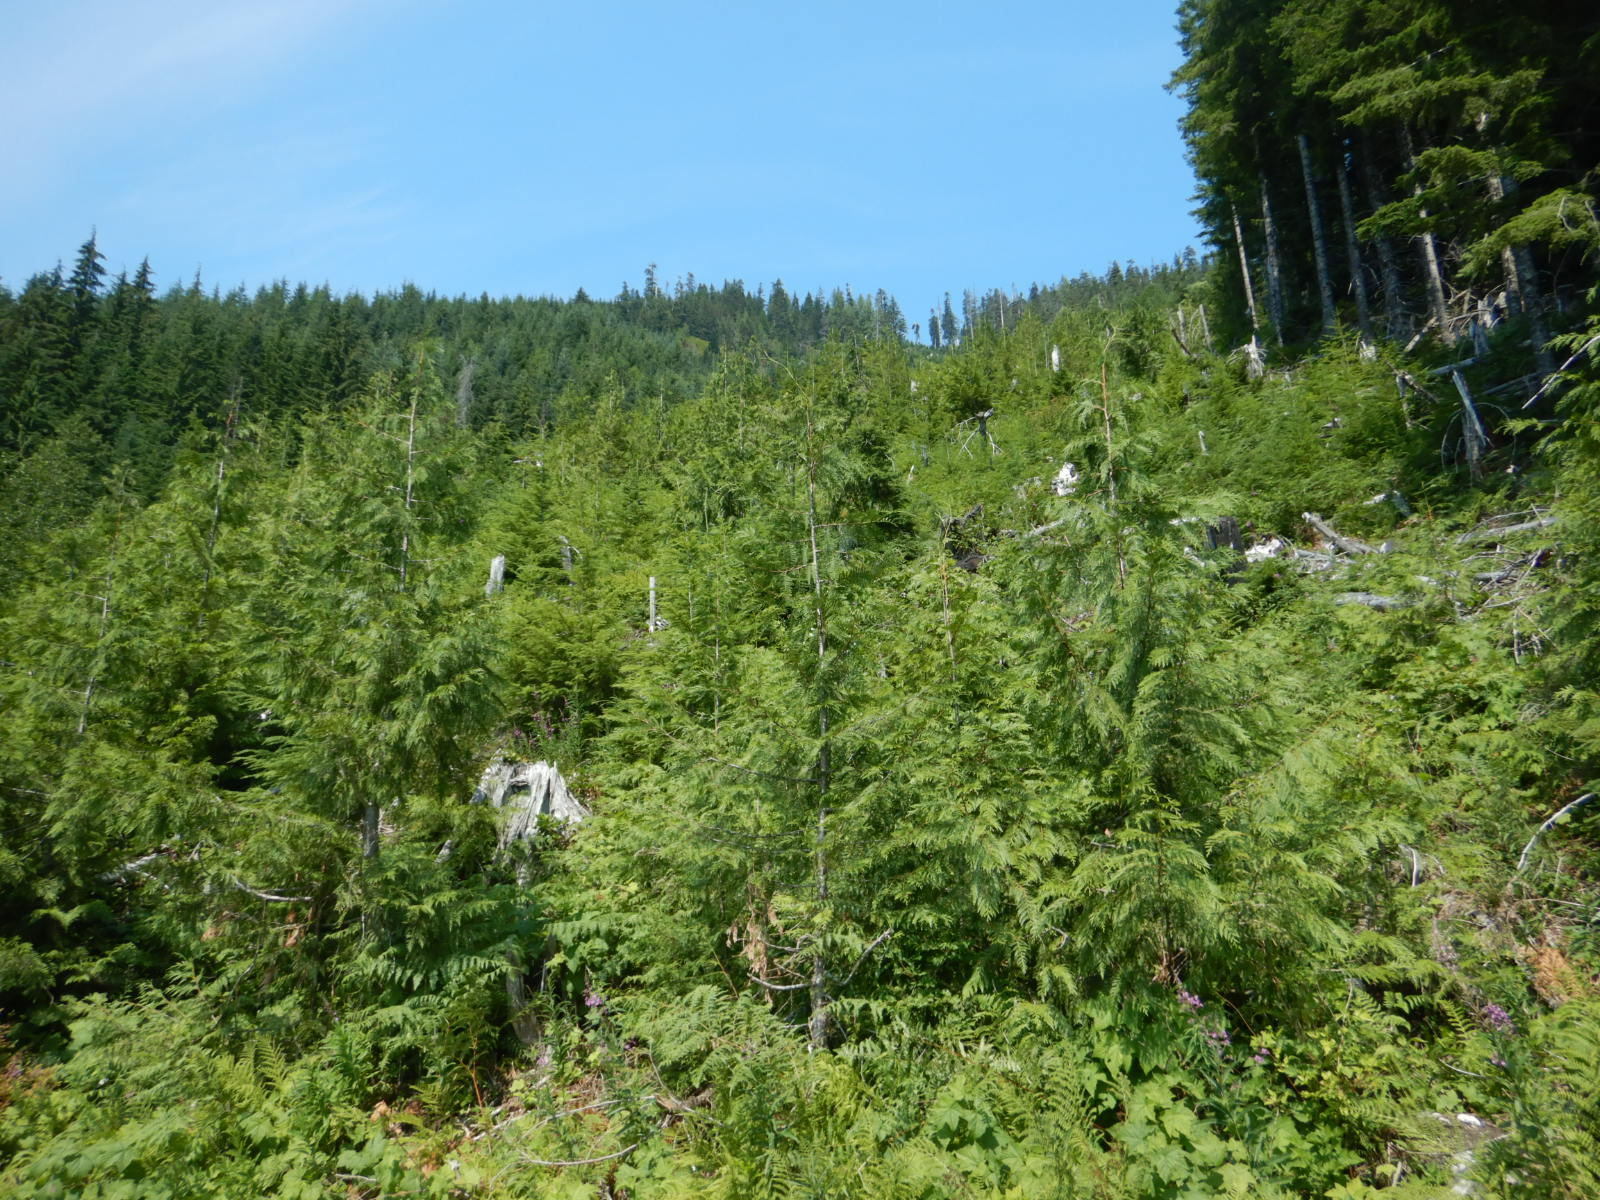 view of short trees caused by avalanche